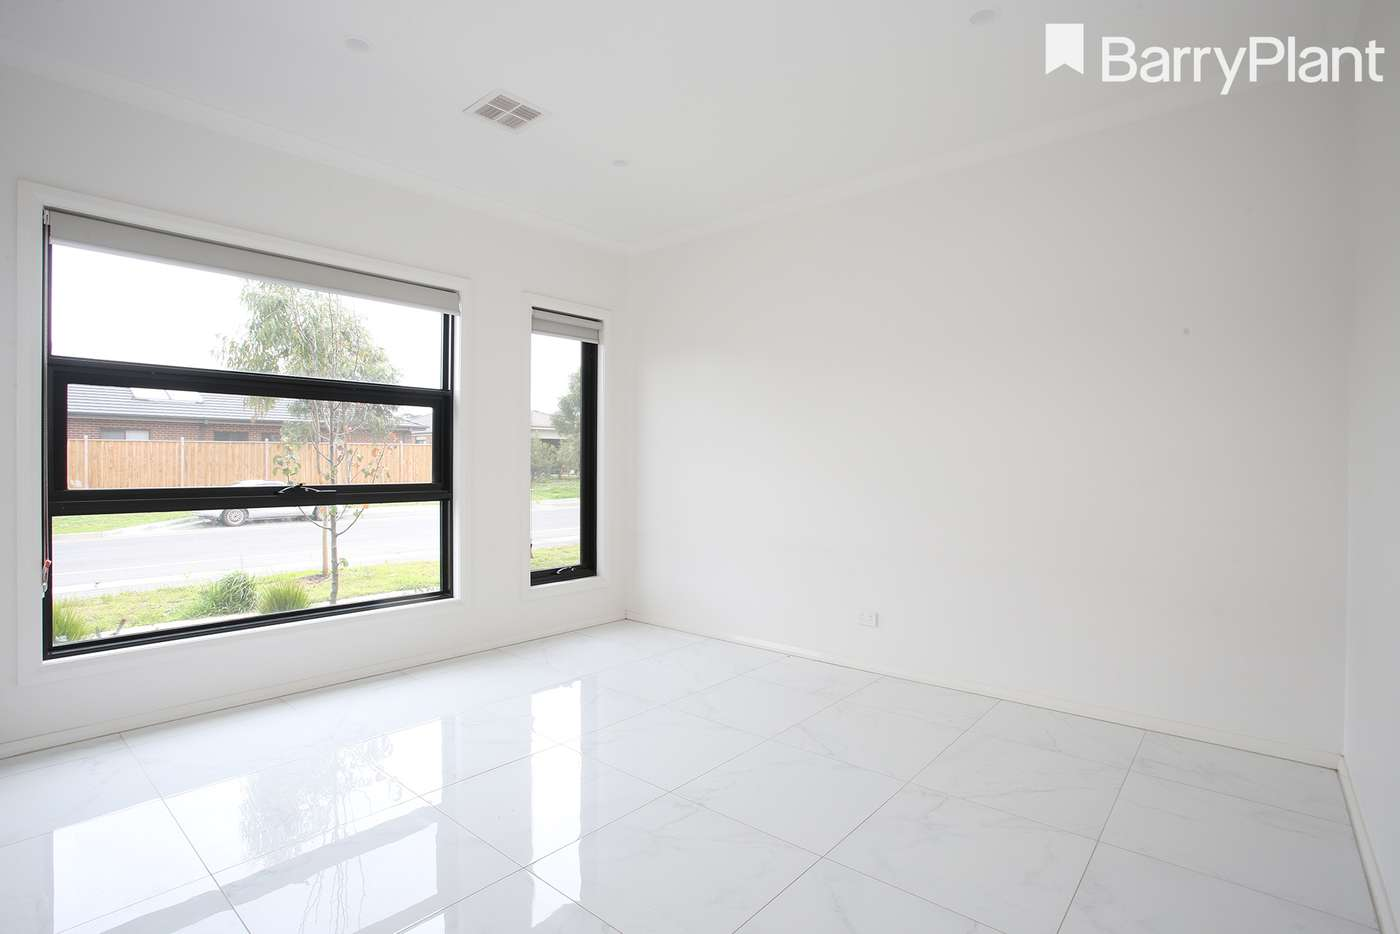 Sixth view of Homely house listing, 89 Parkhurst Drive, Cranbourne East VIC 3977